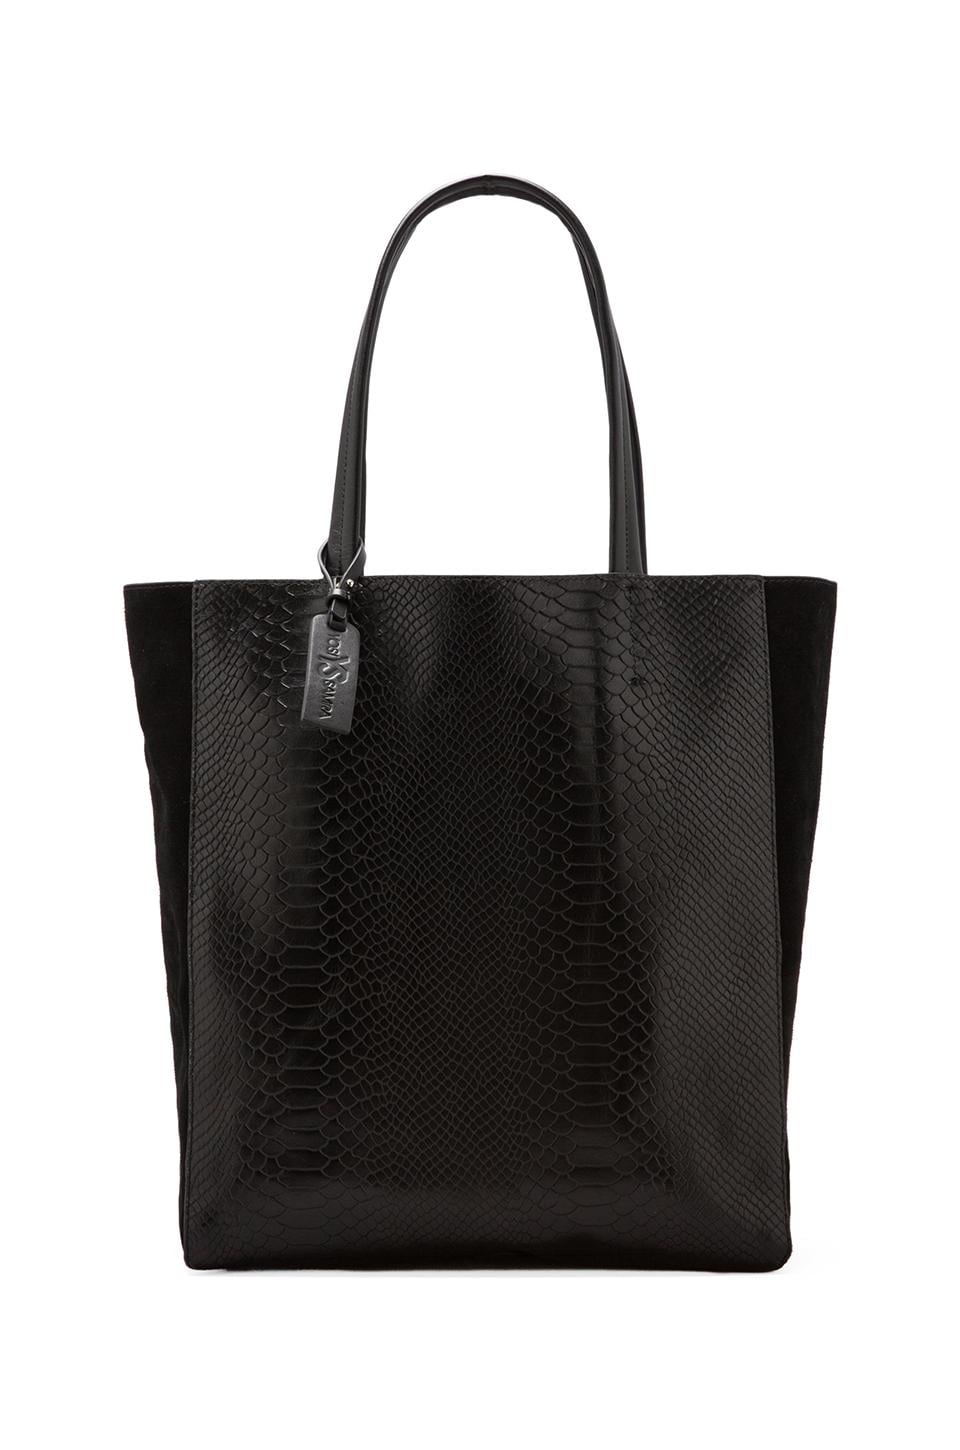 Yosi Samra Two Tone Croco Tote Bag in Black